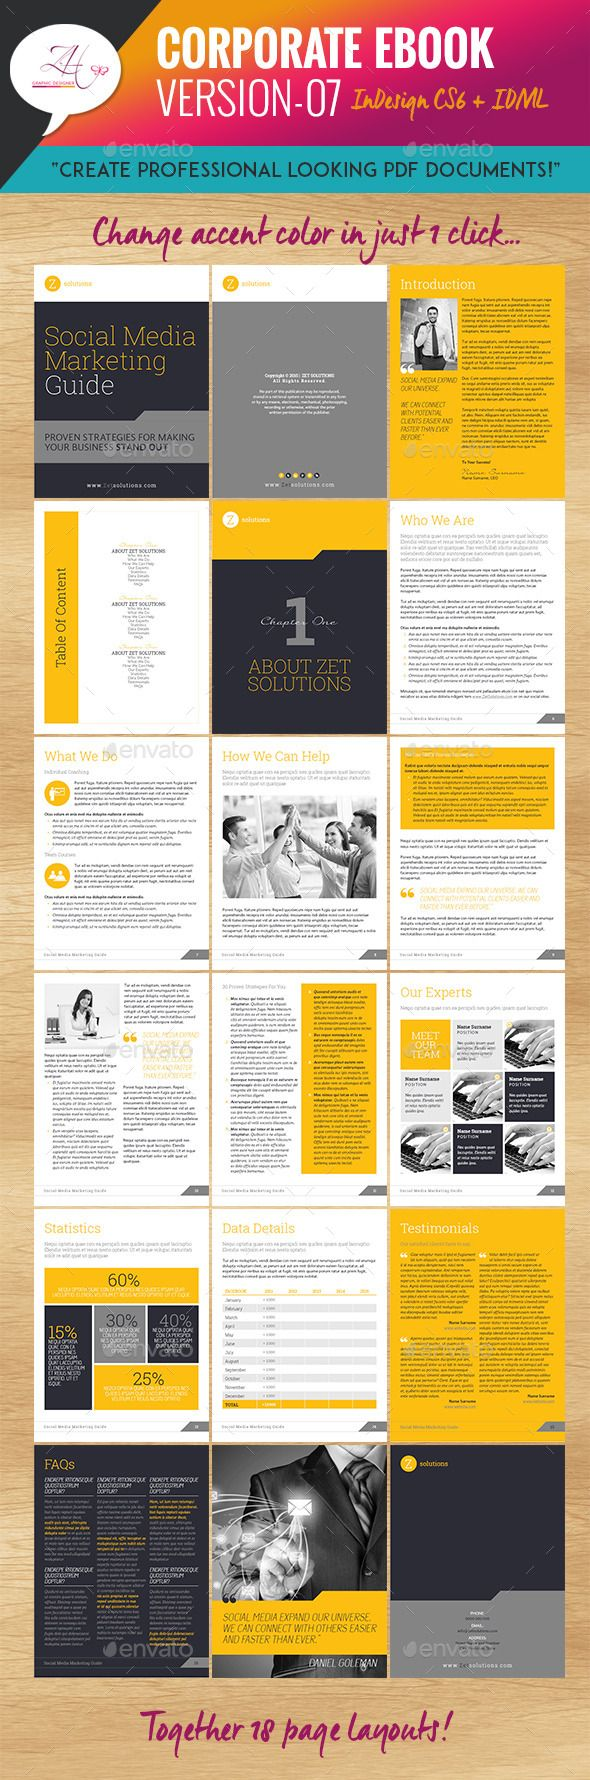 Cute 1 2 3 Nu Kapitel Resume Thin 10 Minute Resume Square 10 Steps To Creating A Resume 16 Year Old Resumes Old 2 Round Label Template Pink2014 Calendar Excel Template 25  Best Ideas About Ebook Cover Design On Pinterest | Ebook Cover ..